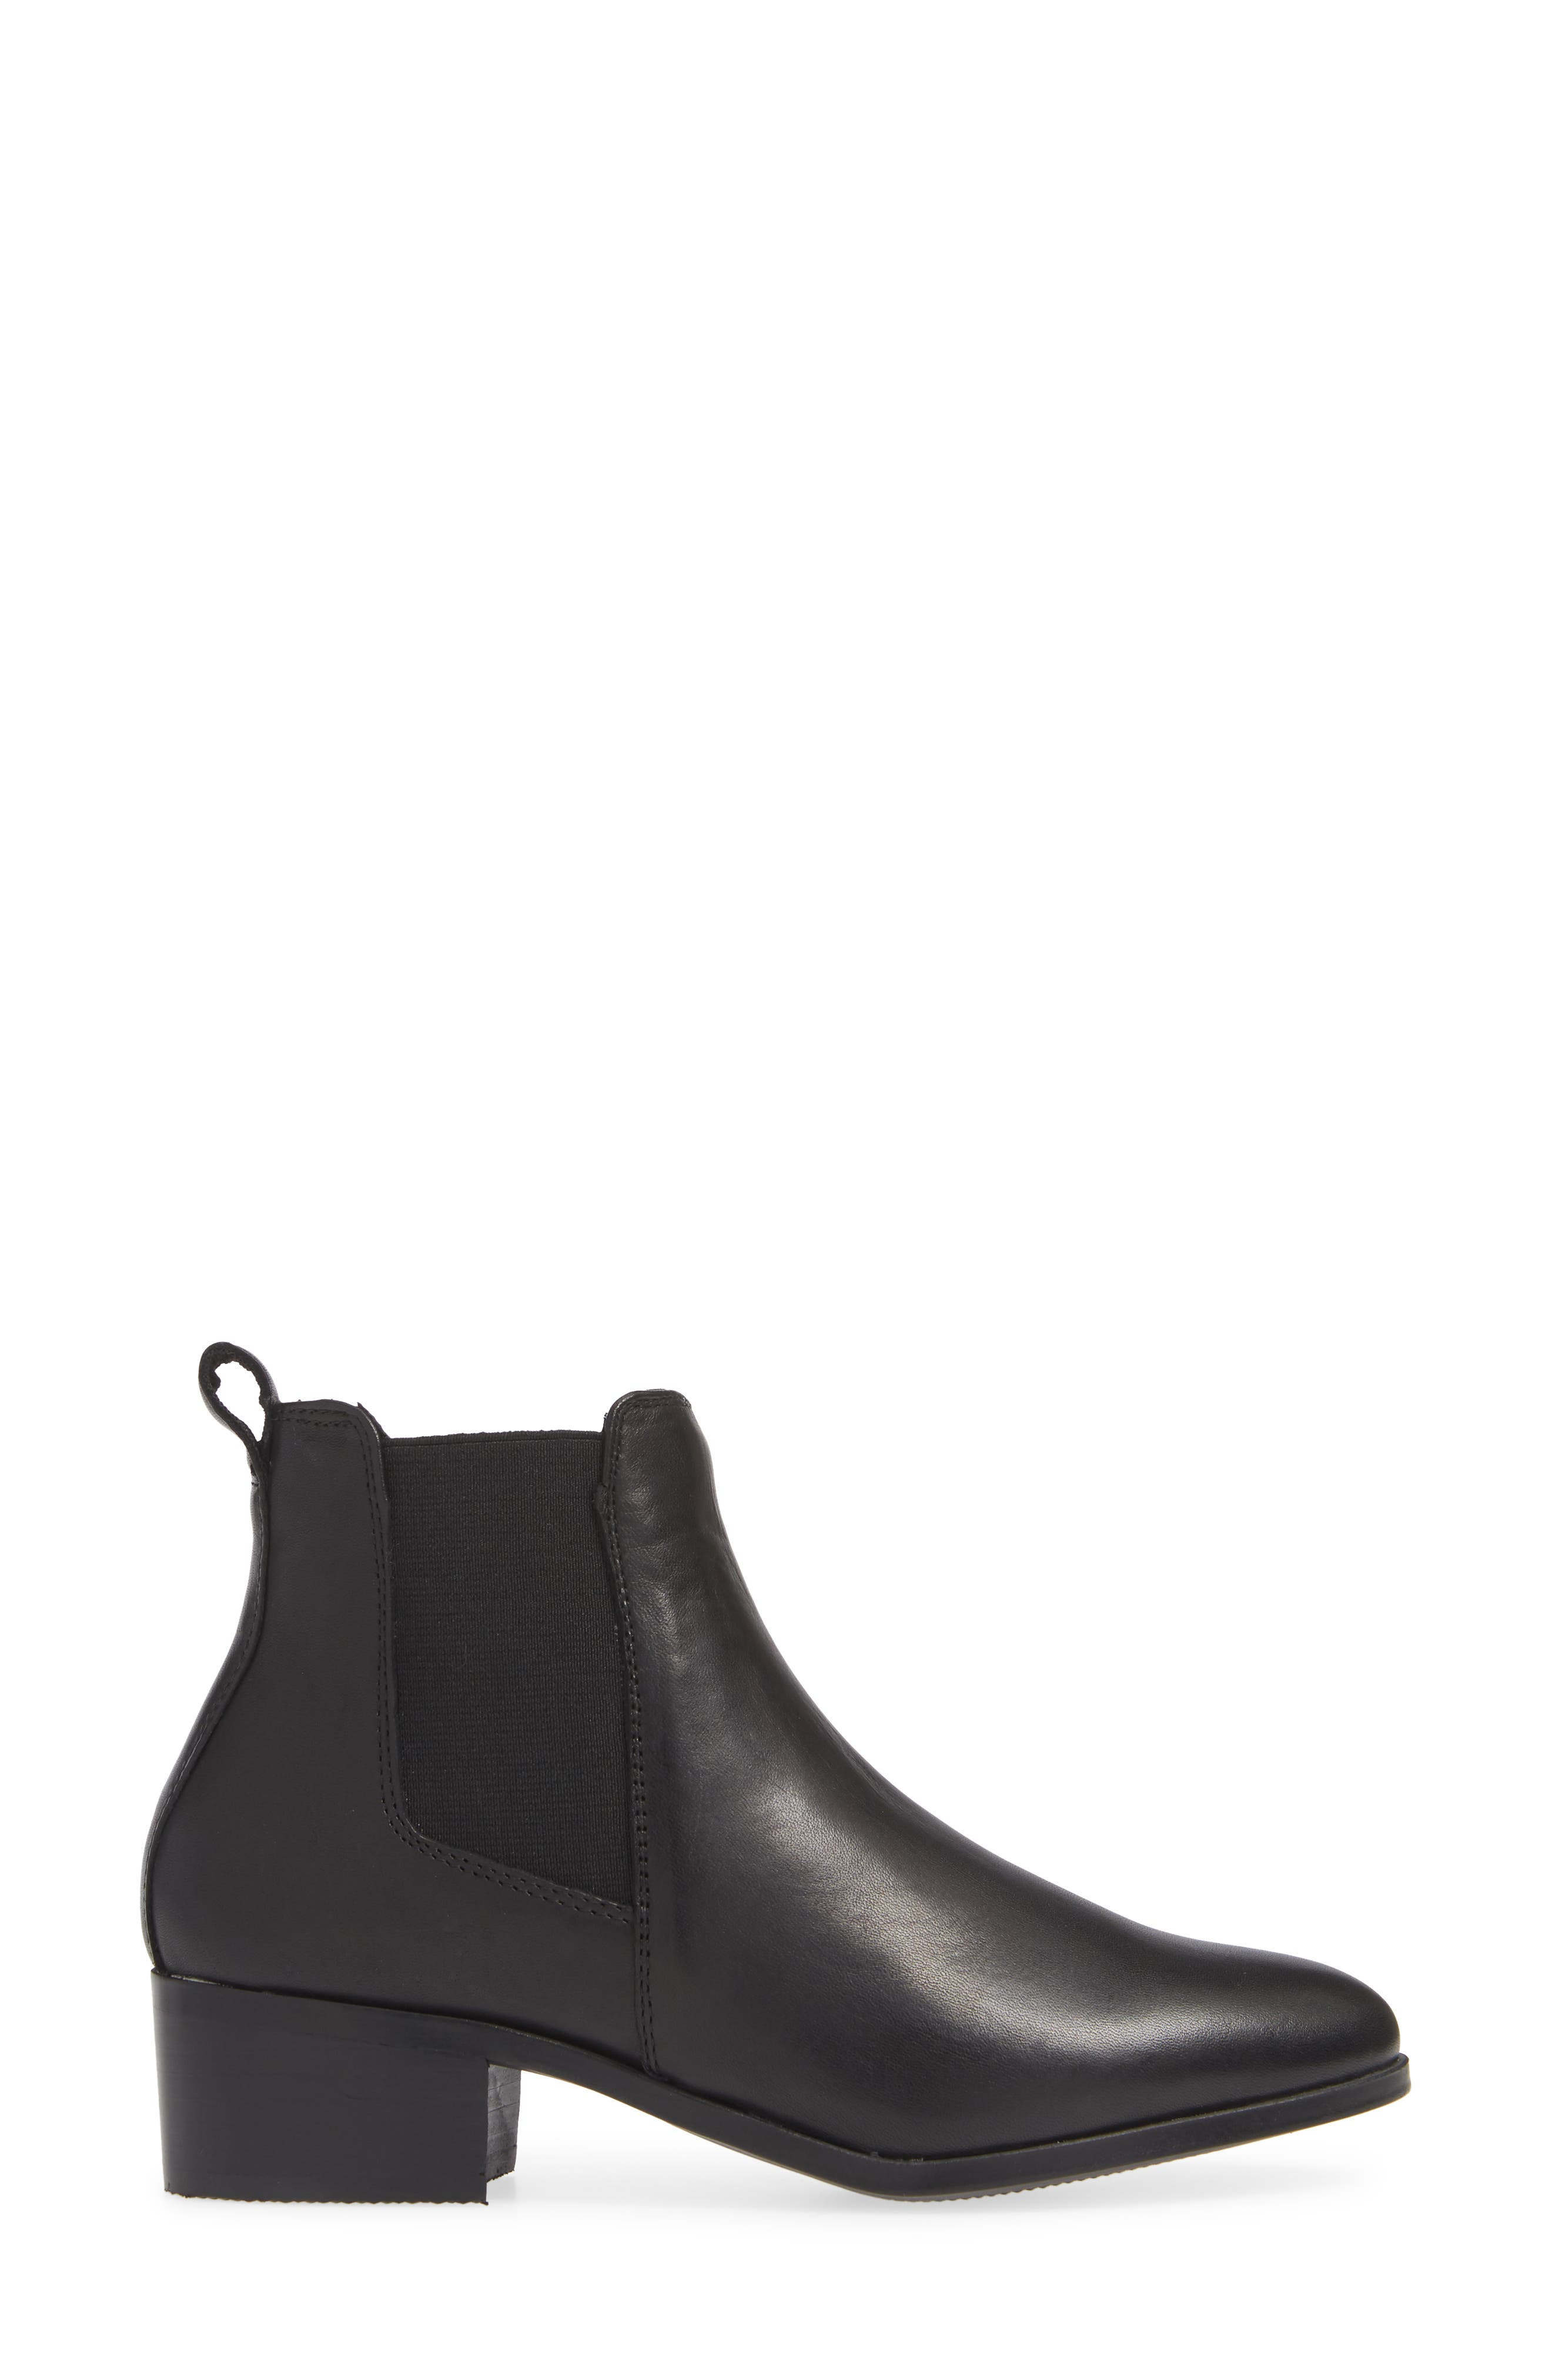 Dover Chelsea Bootie,                             Alternate thumbnail 3, color,                             BLACK LEATHER